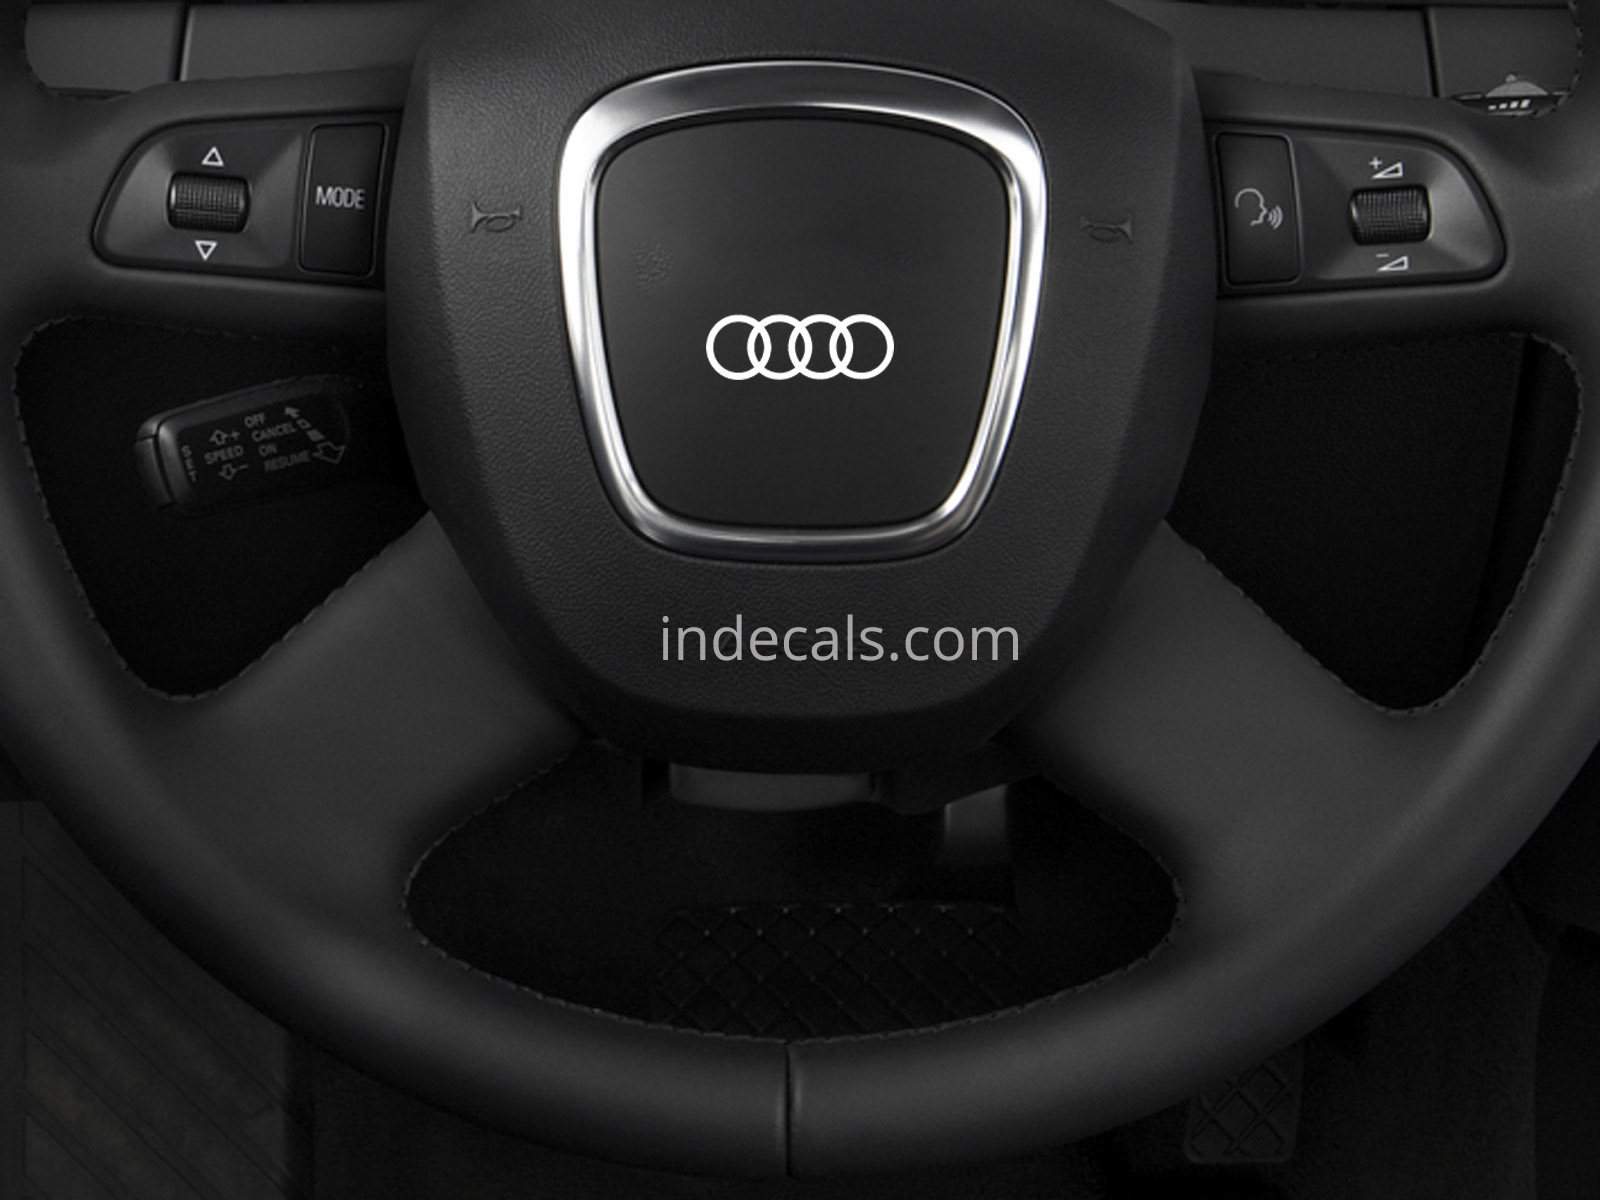 3 x Audi Rings Stickers for Steering Wheel - White